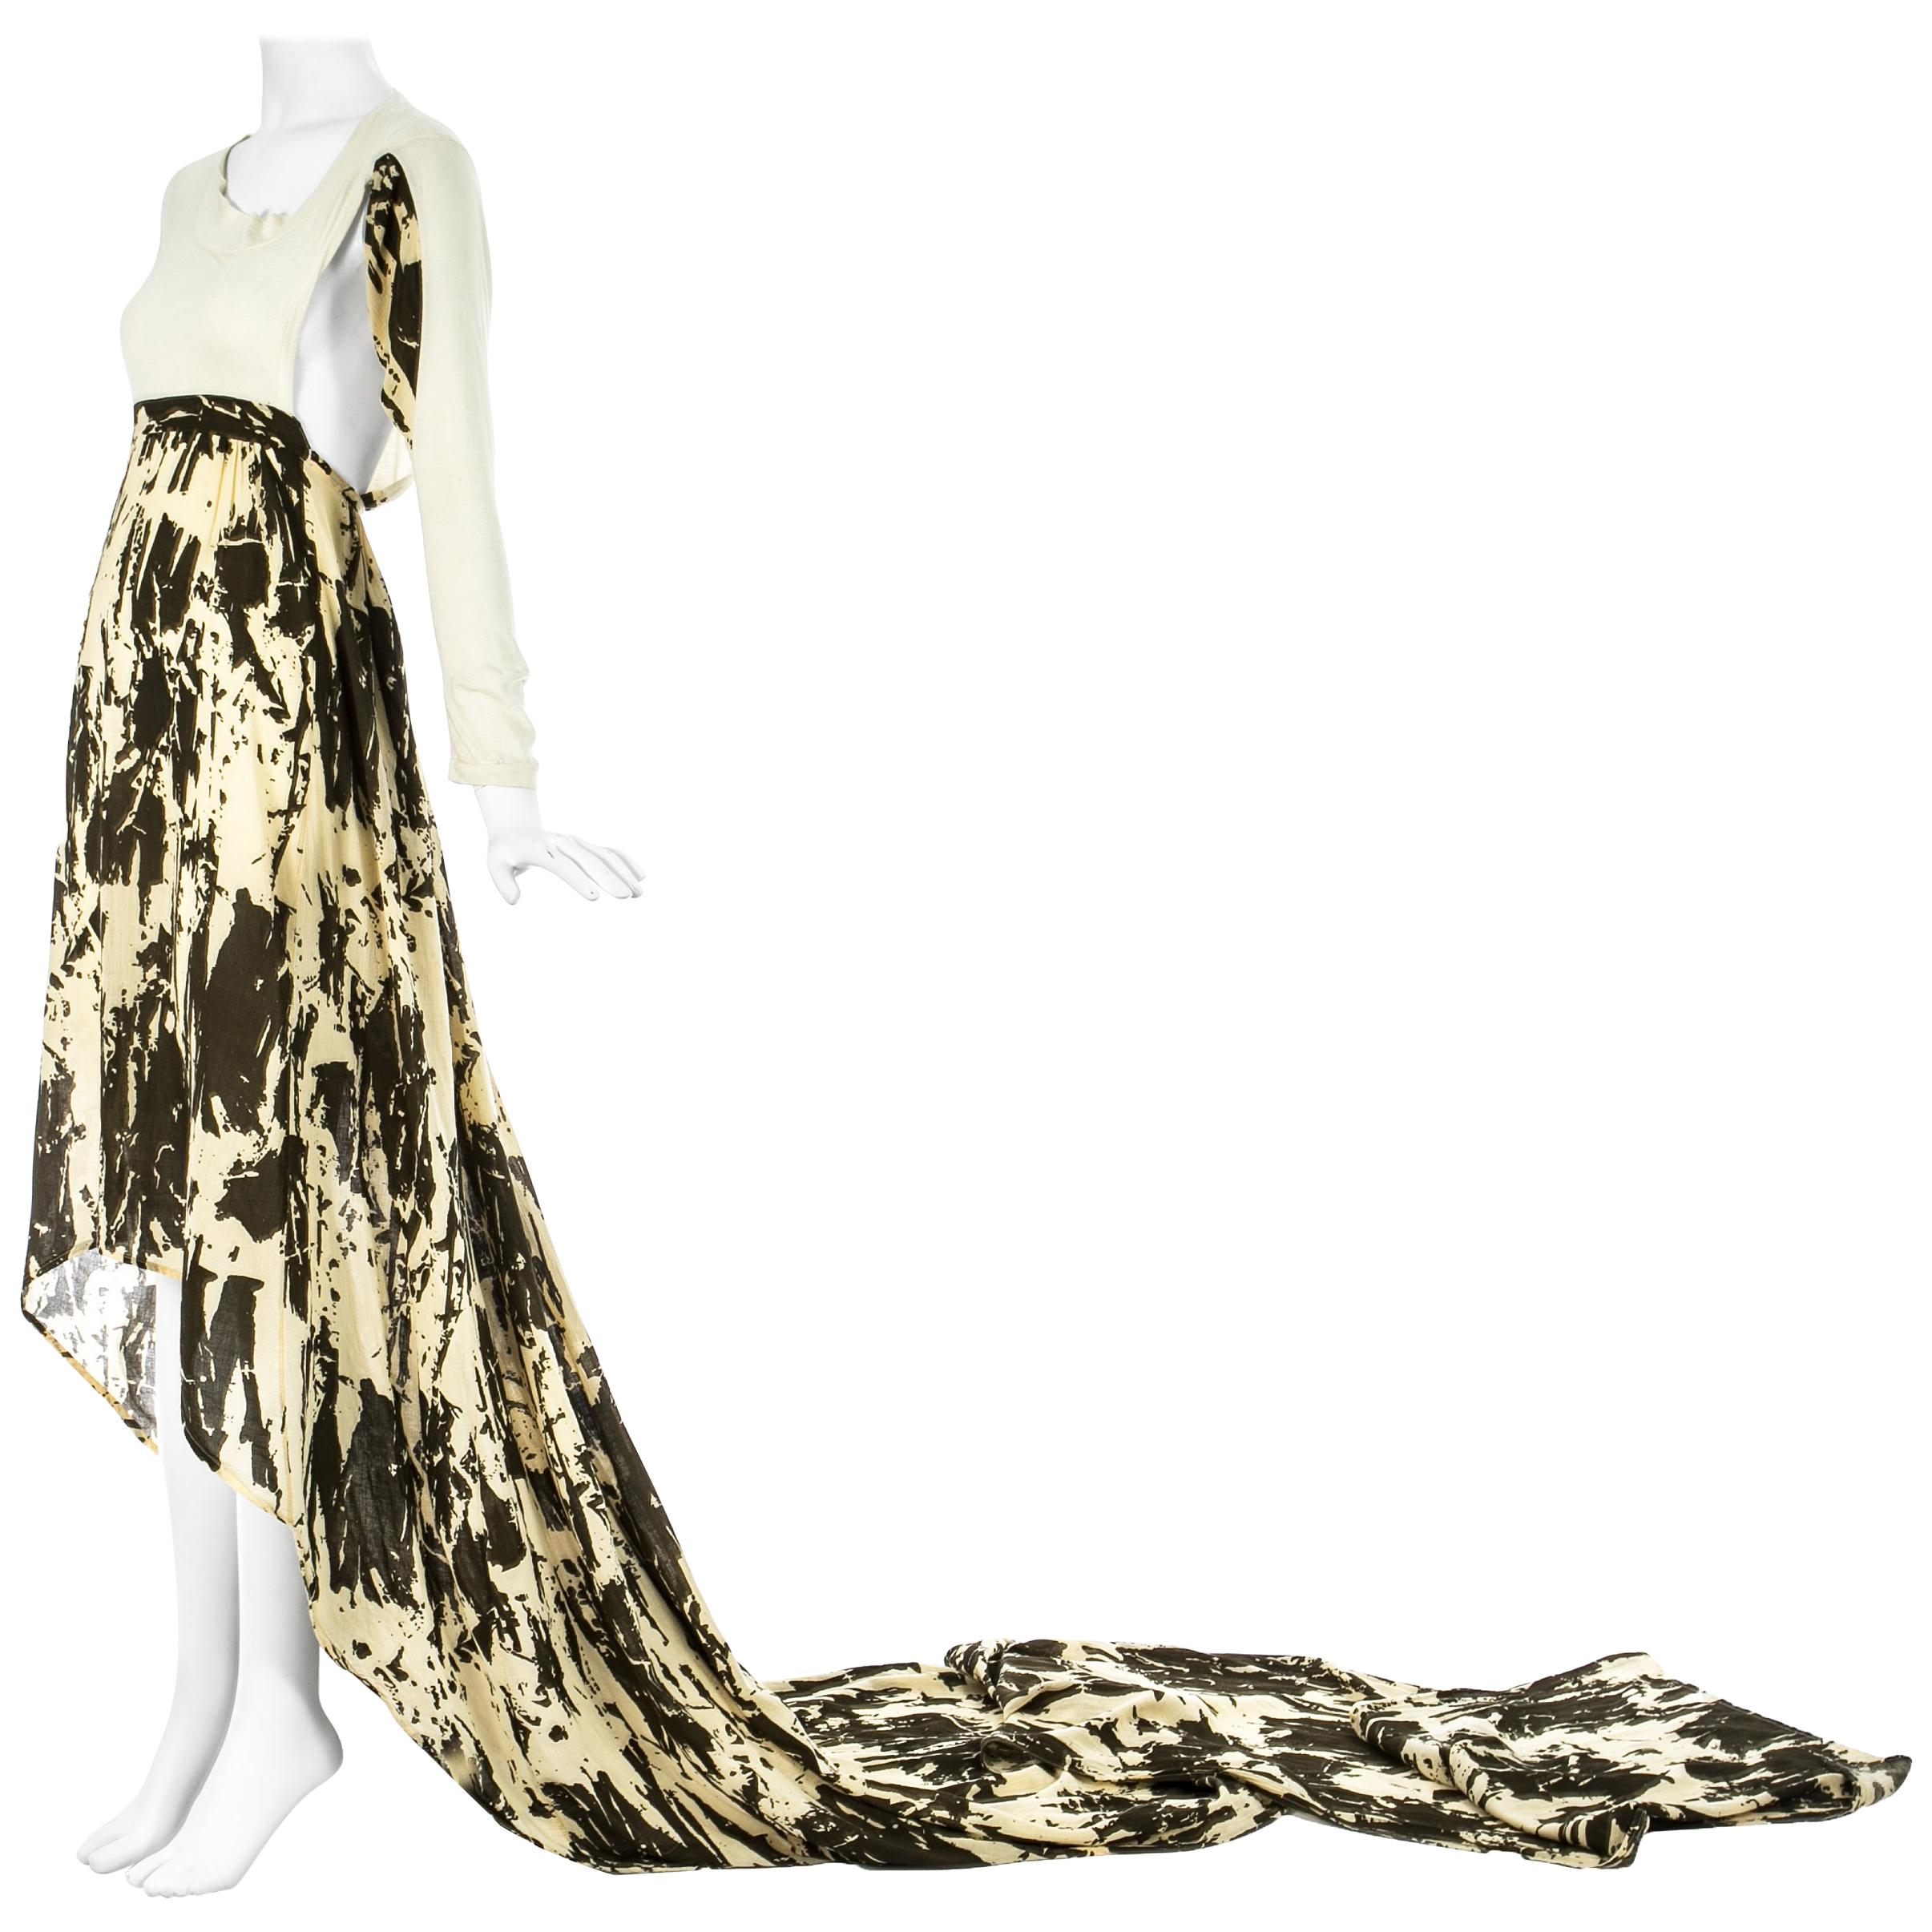 Worlds End cream and brown acid wash toga dress with extra long train, S/S 1982